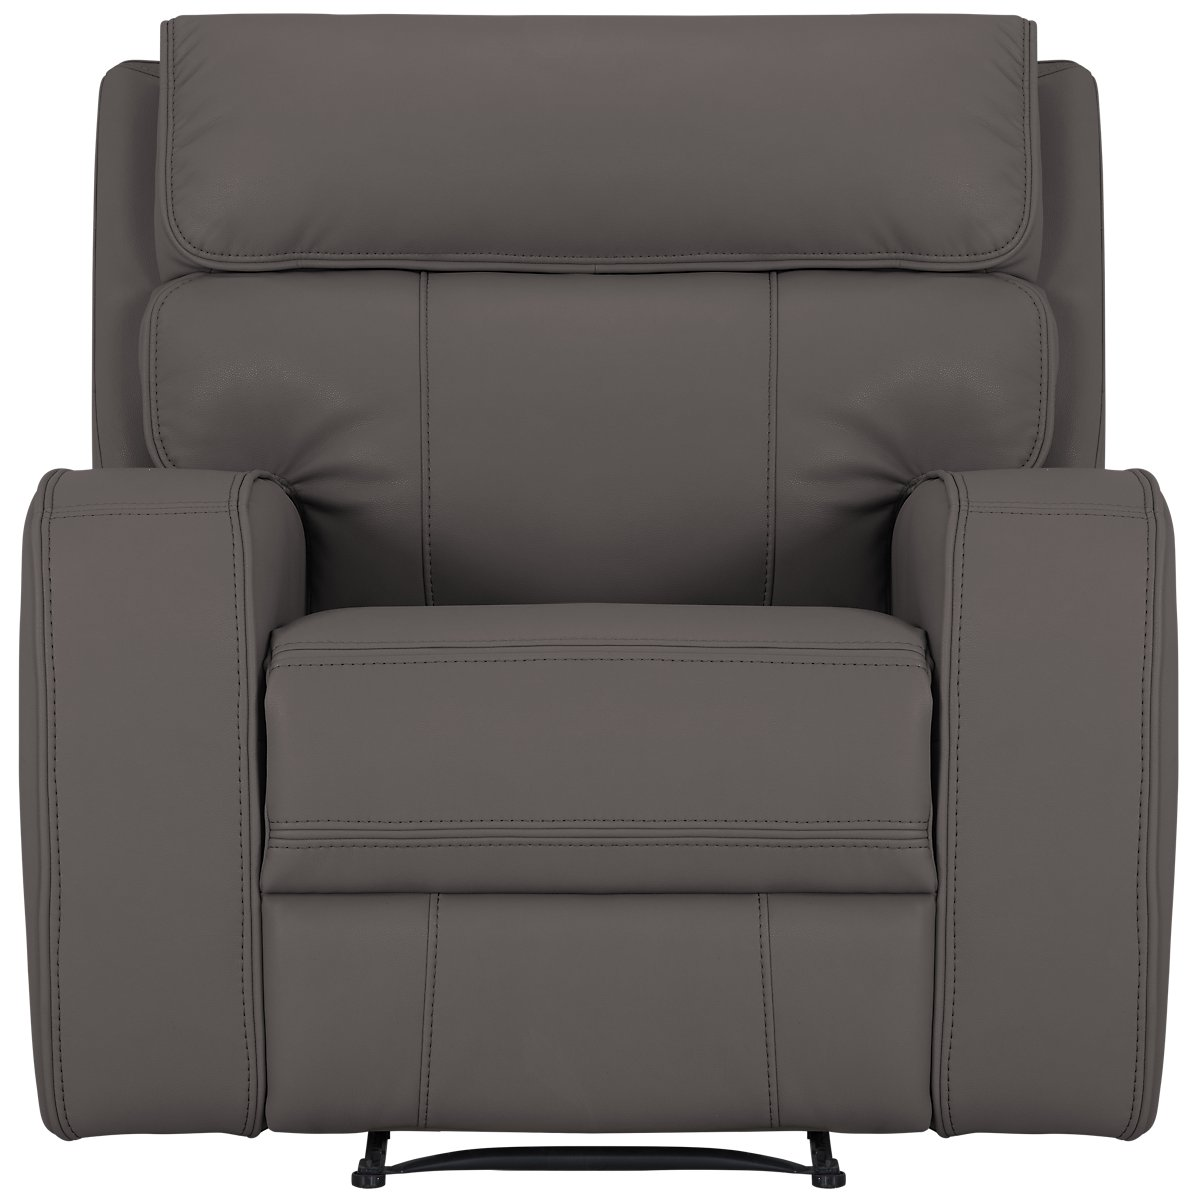 City Furniture Rhett Gray Microfiber Manually Reclining